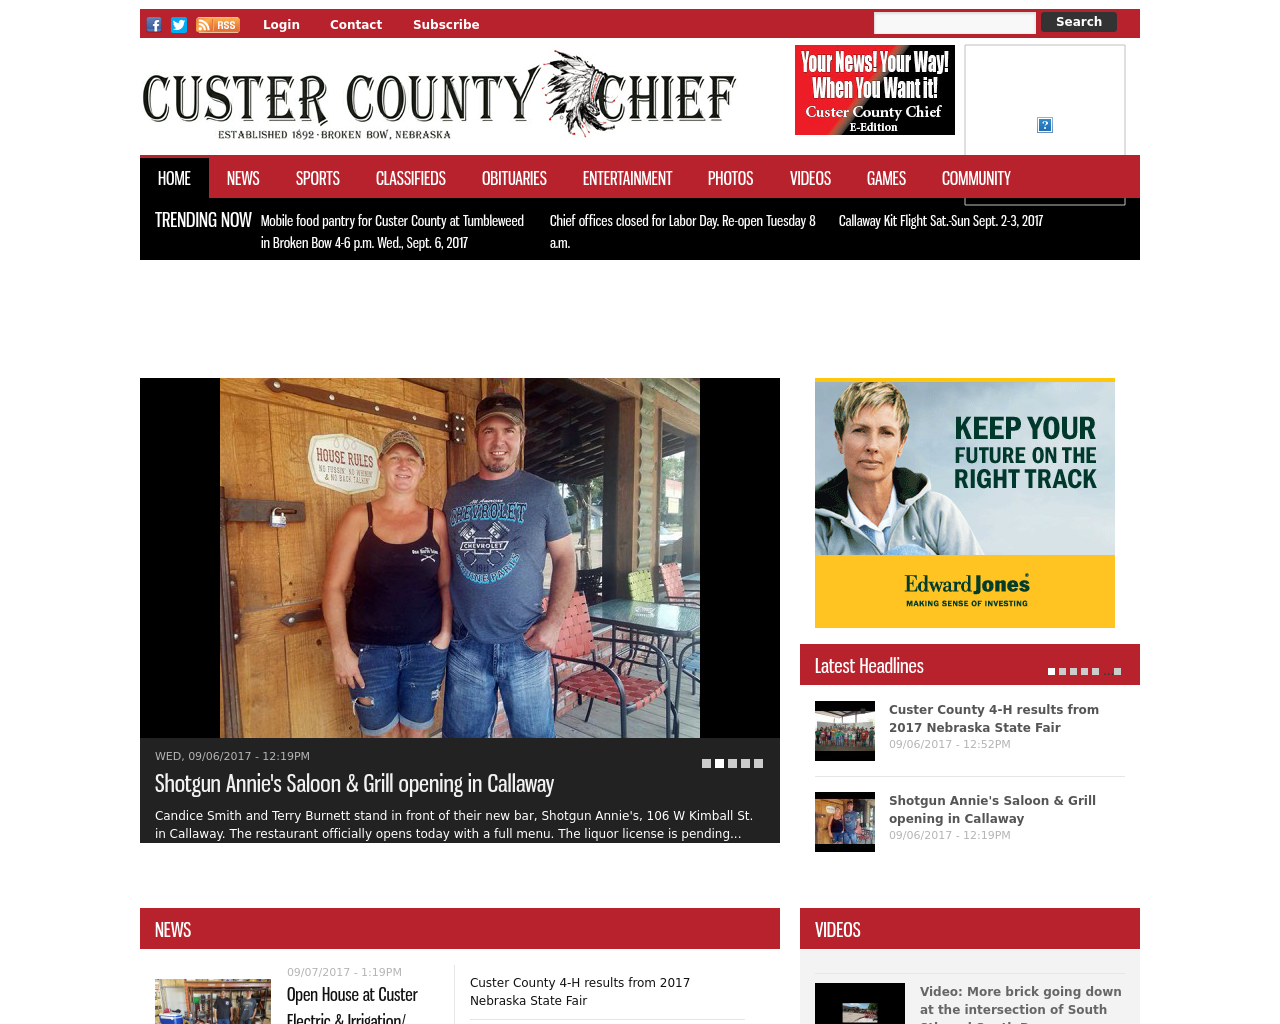 Custer-County-Chief-Online-Advertising-Reviews-Pricing